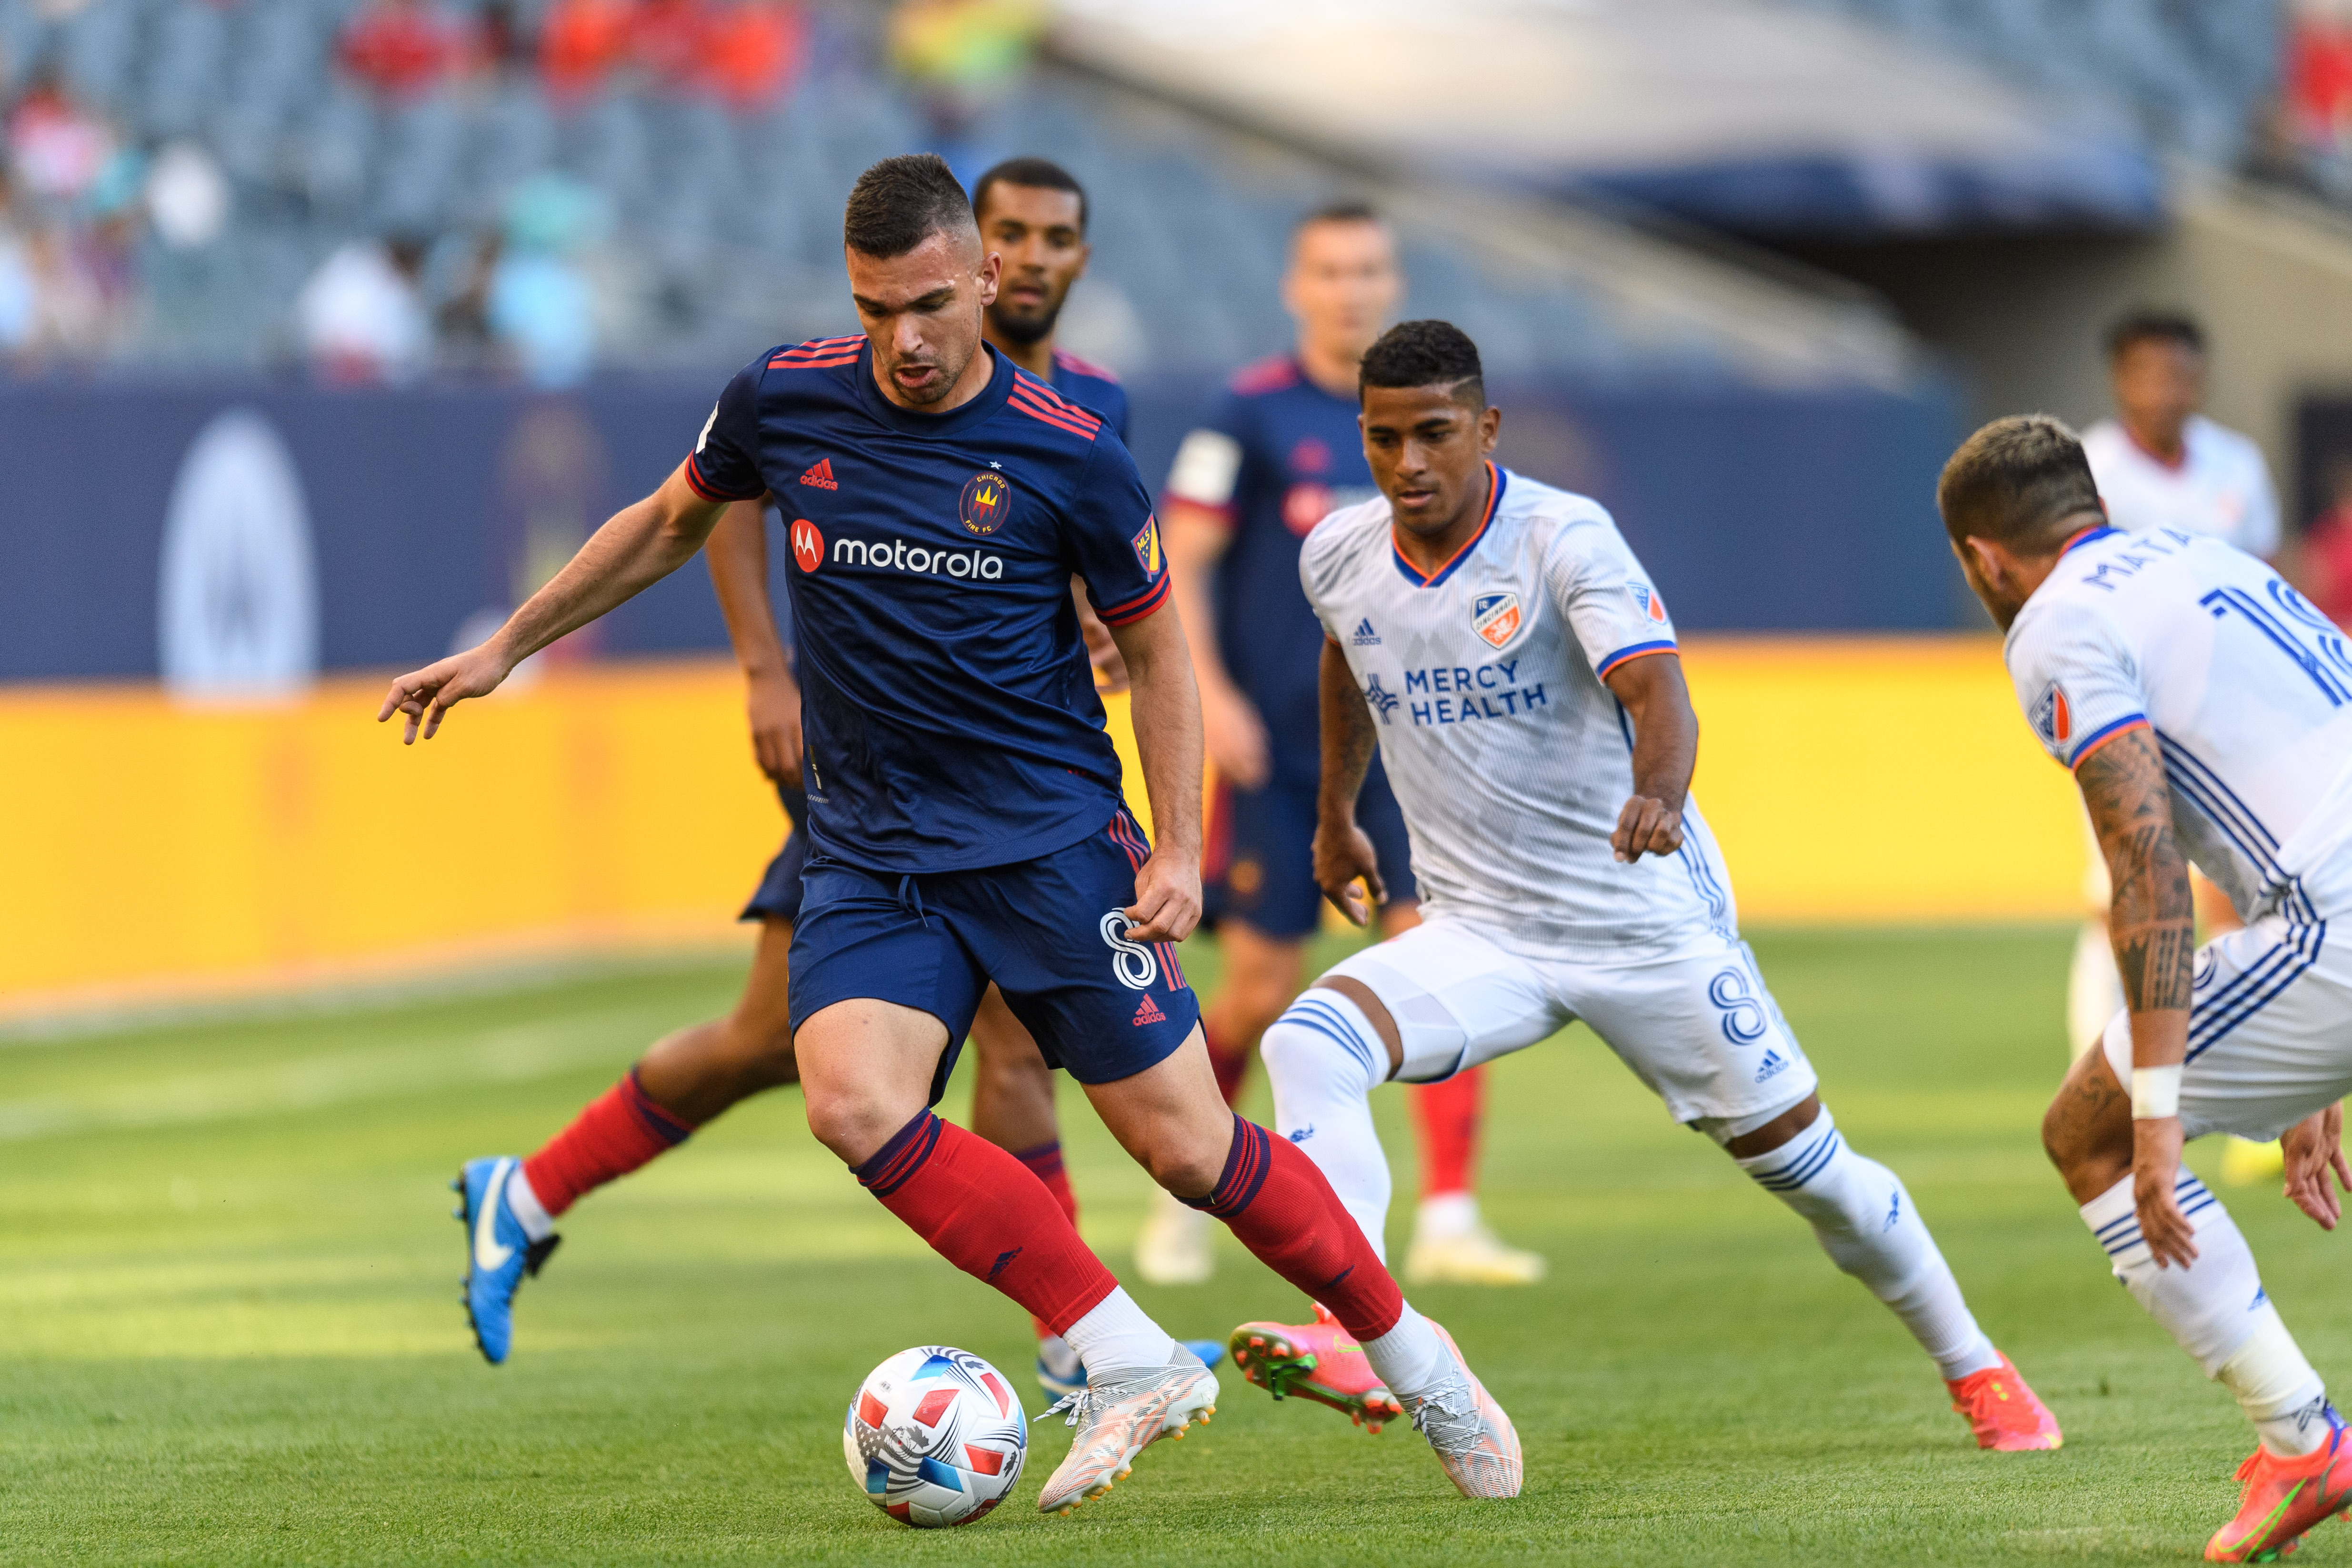 Fire midfielder Luka Stojanovic controls the ball during the first half of Wednesday's game.